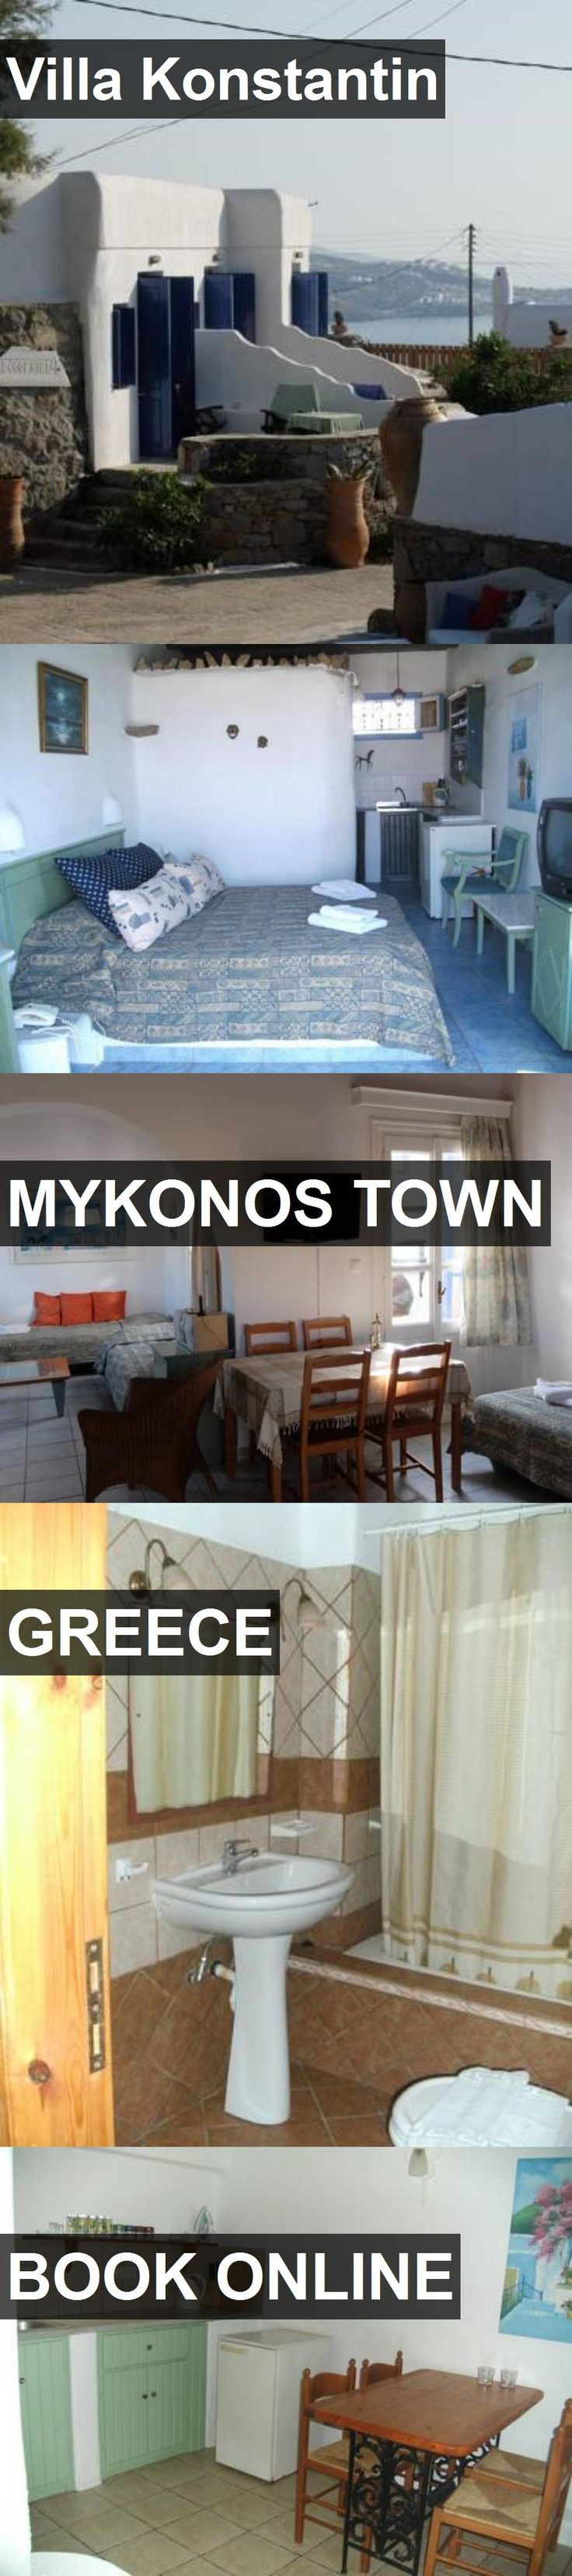 Hotel Villa Konstantin in Mykonos Town, Greece. For more information, photos, reviews and best prices please follow the link. #Greece #MykonosTown #travel #vacation #hotel